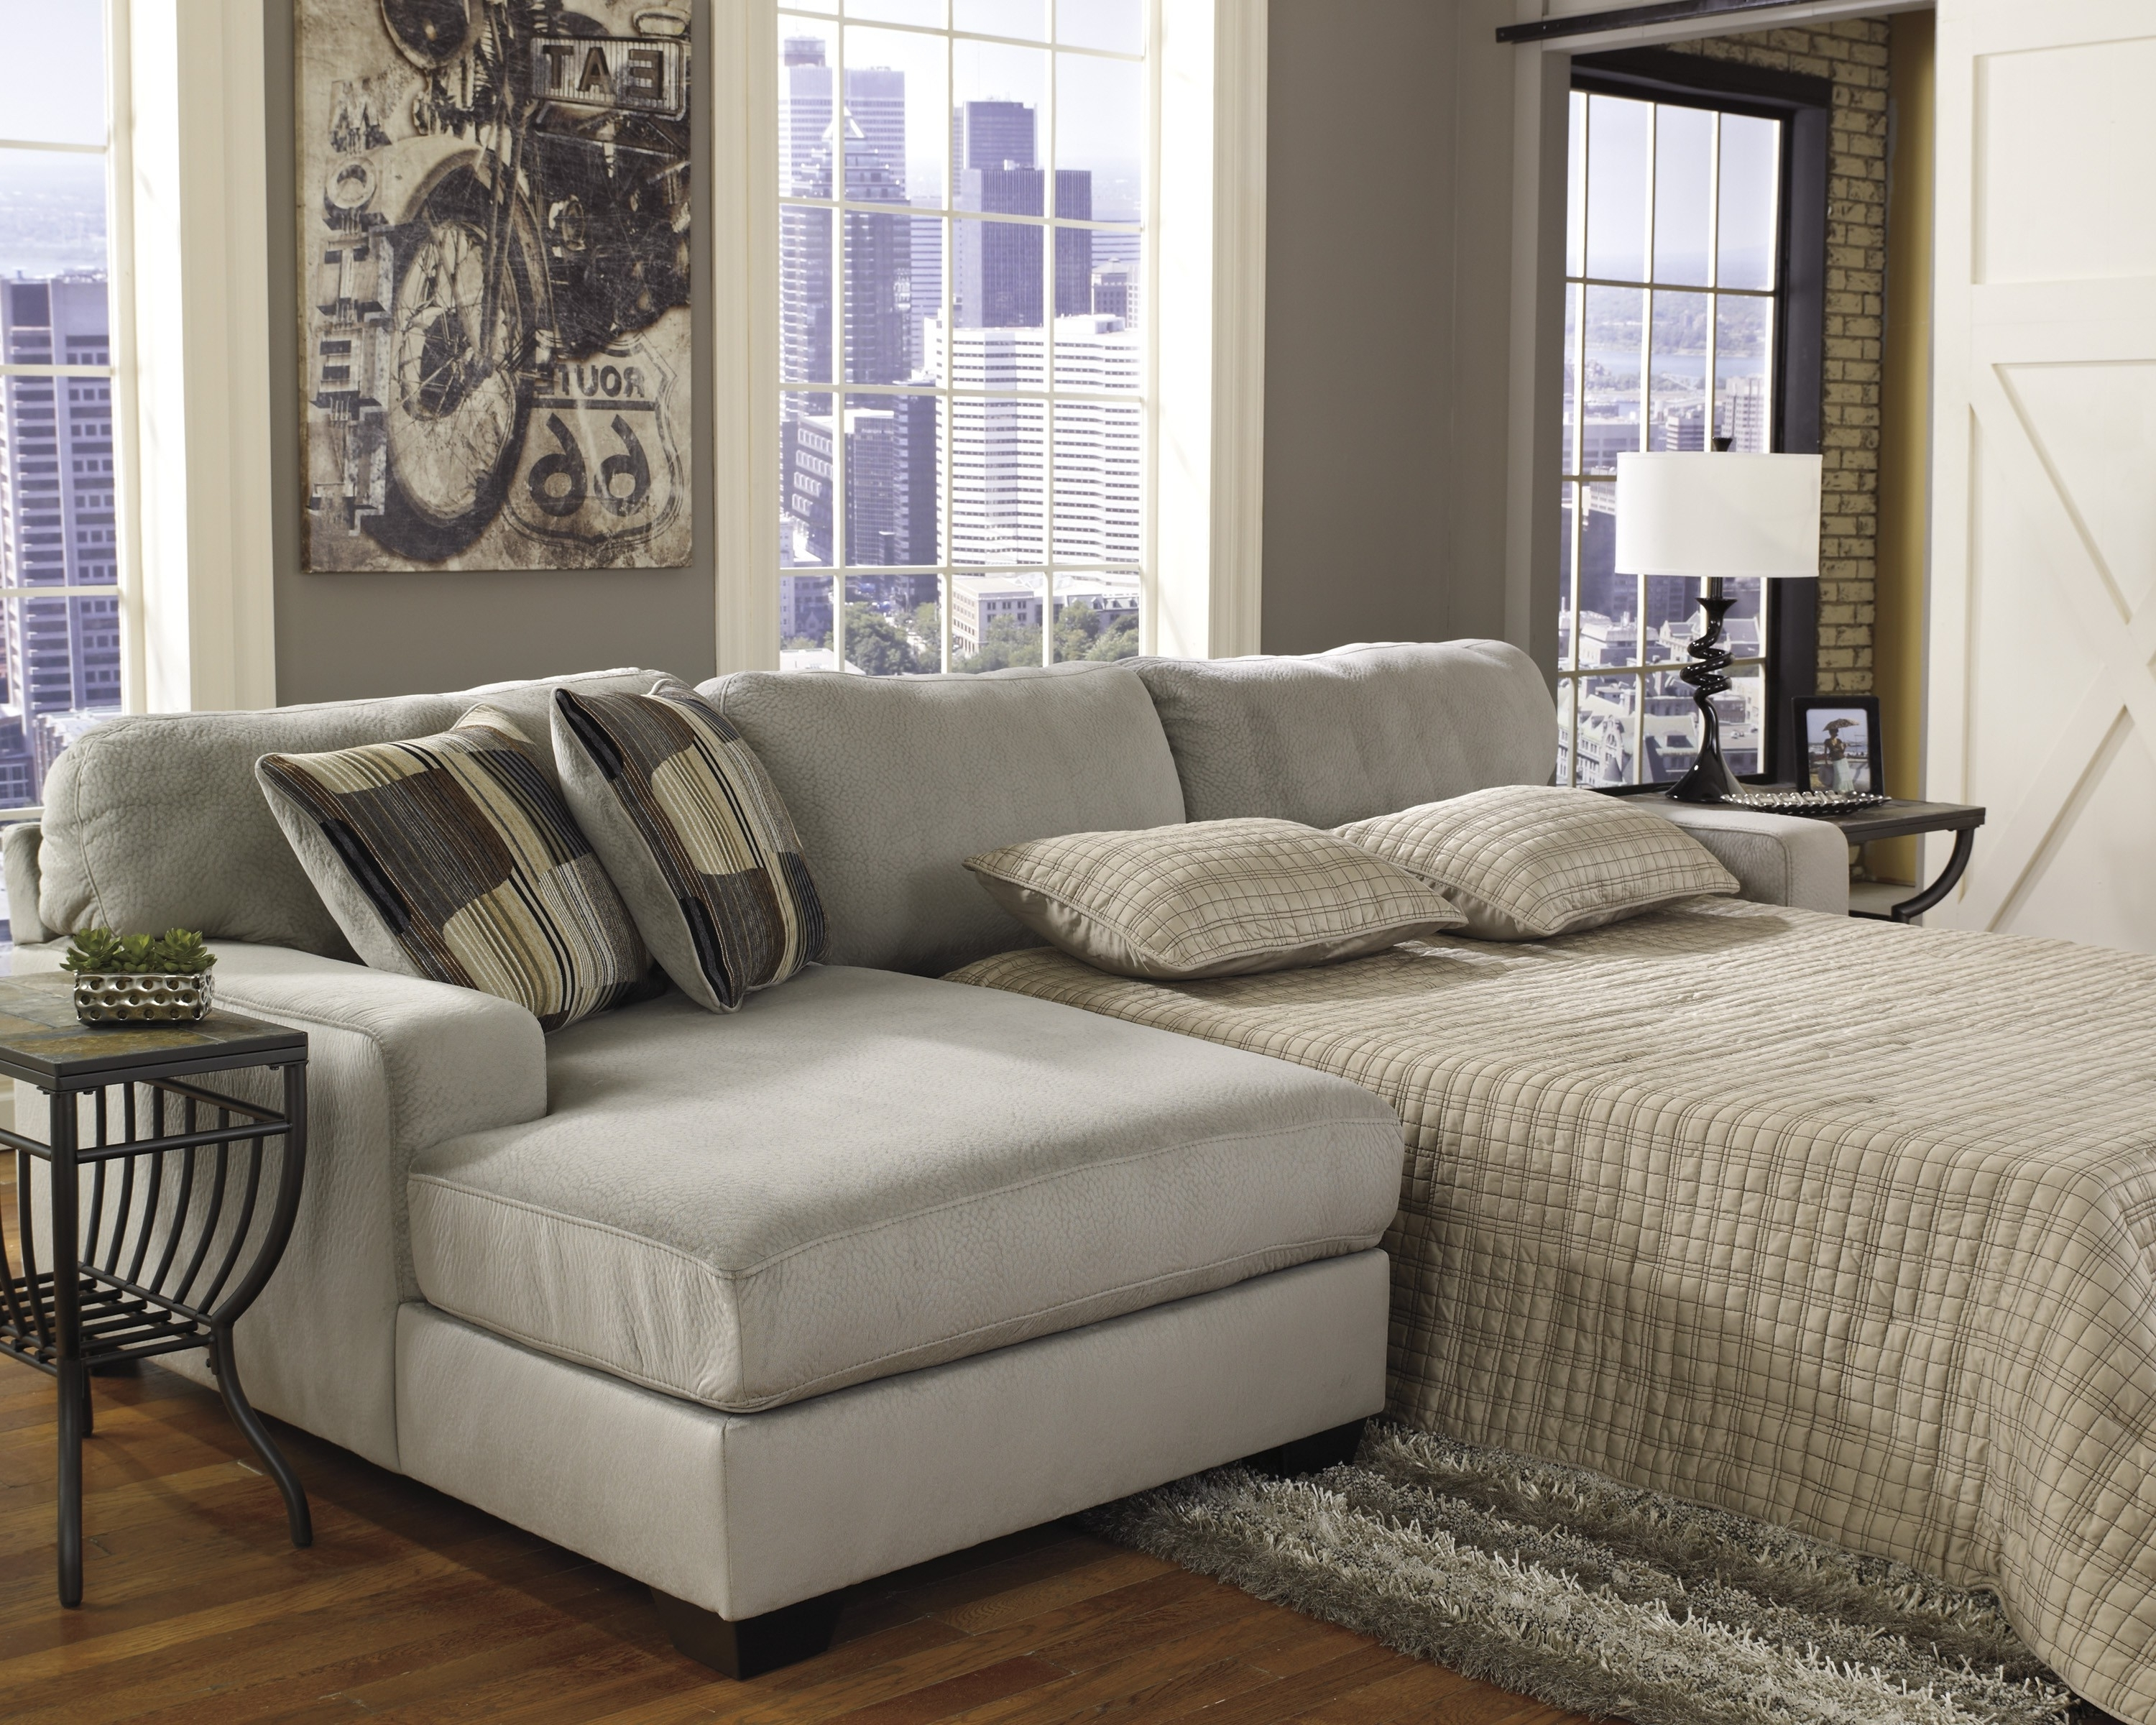 Lovely Queen Sleeper Sectional Sofa 87 In Sofas And Couches Set Throughout Favorite Sectional Sofas With Queen Size Sleeper (View 4 of 15)